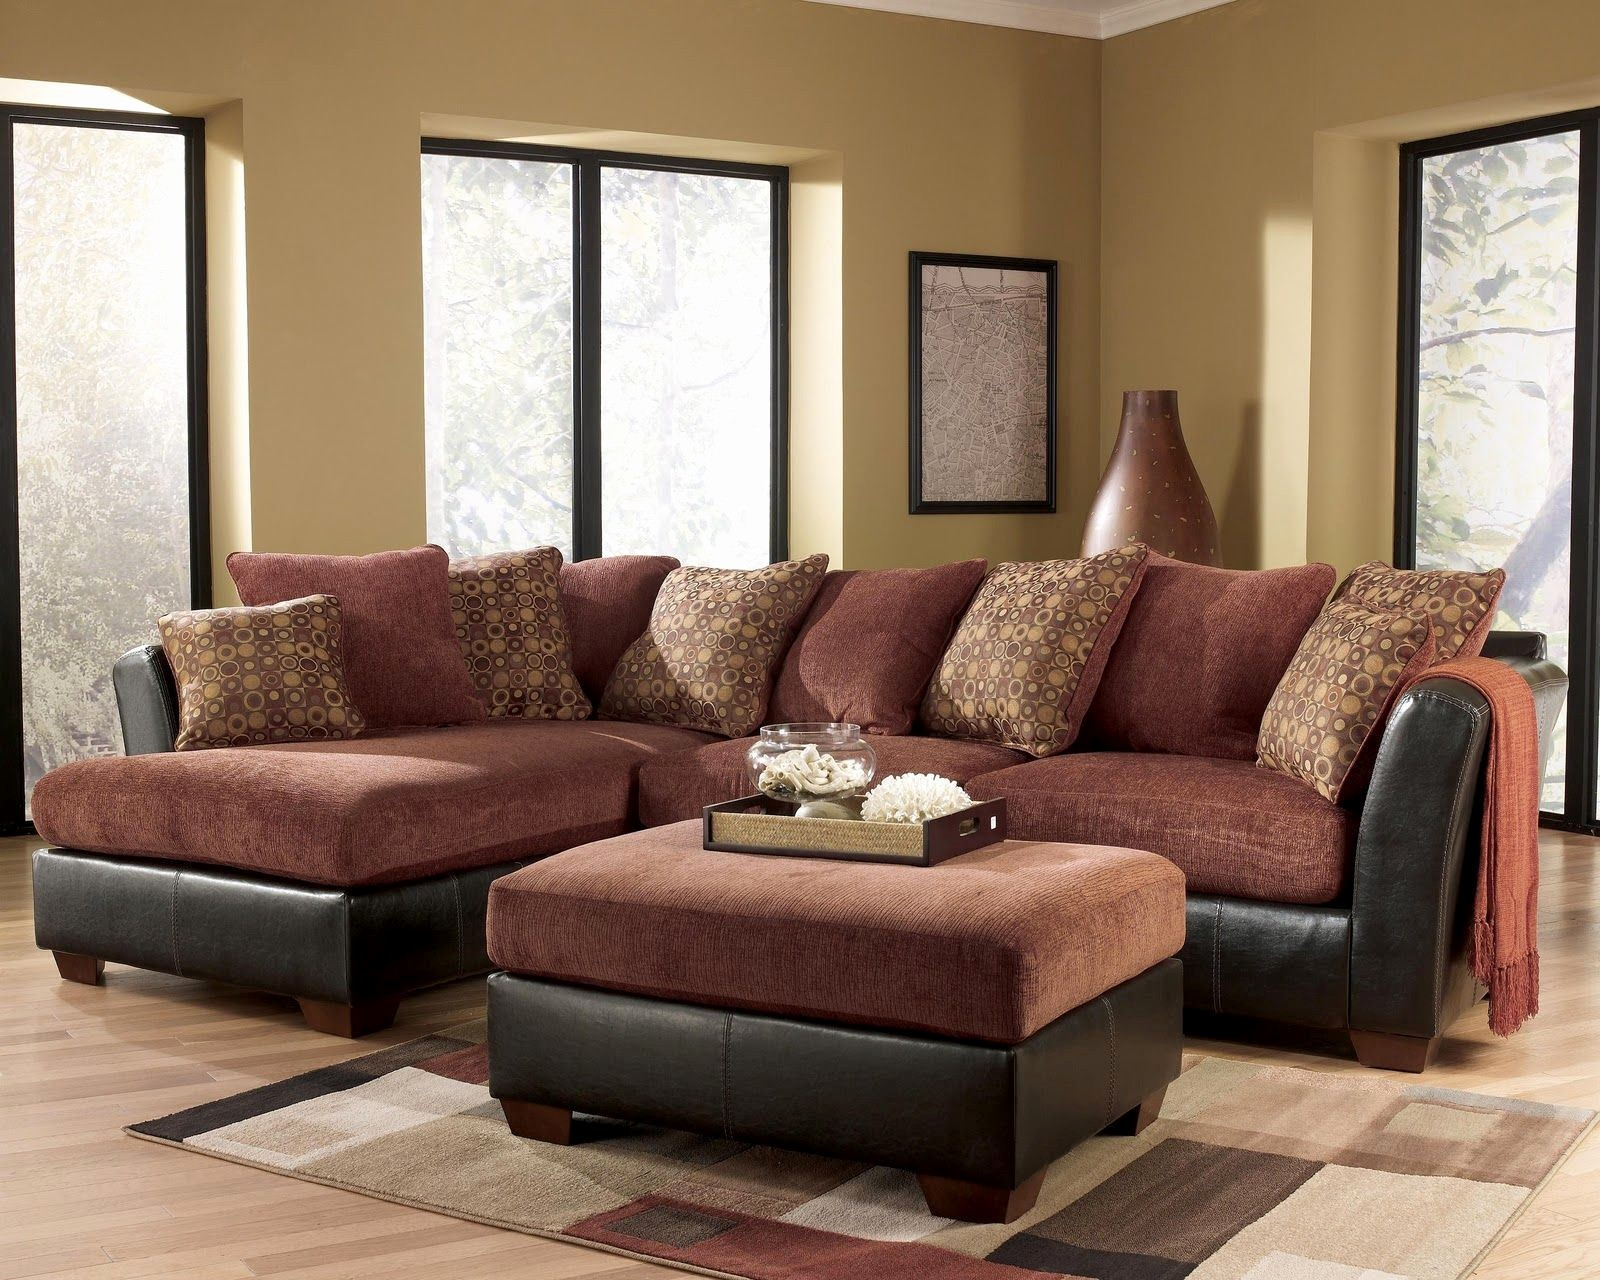 Jcpenney Sectional sofa top Jcpenney Living Room Sets Lovely Jcpenney Sectional sofa Living Gallery